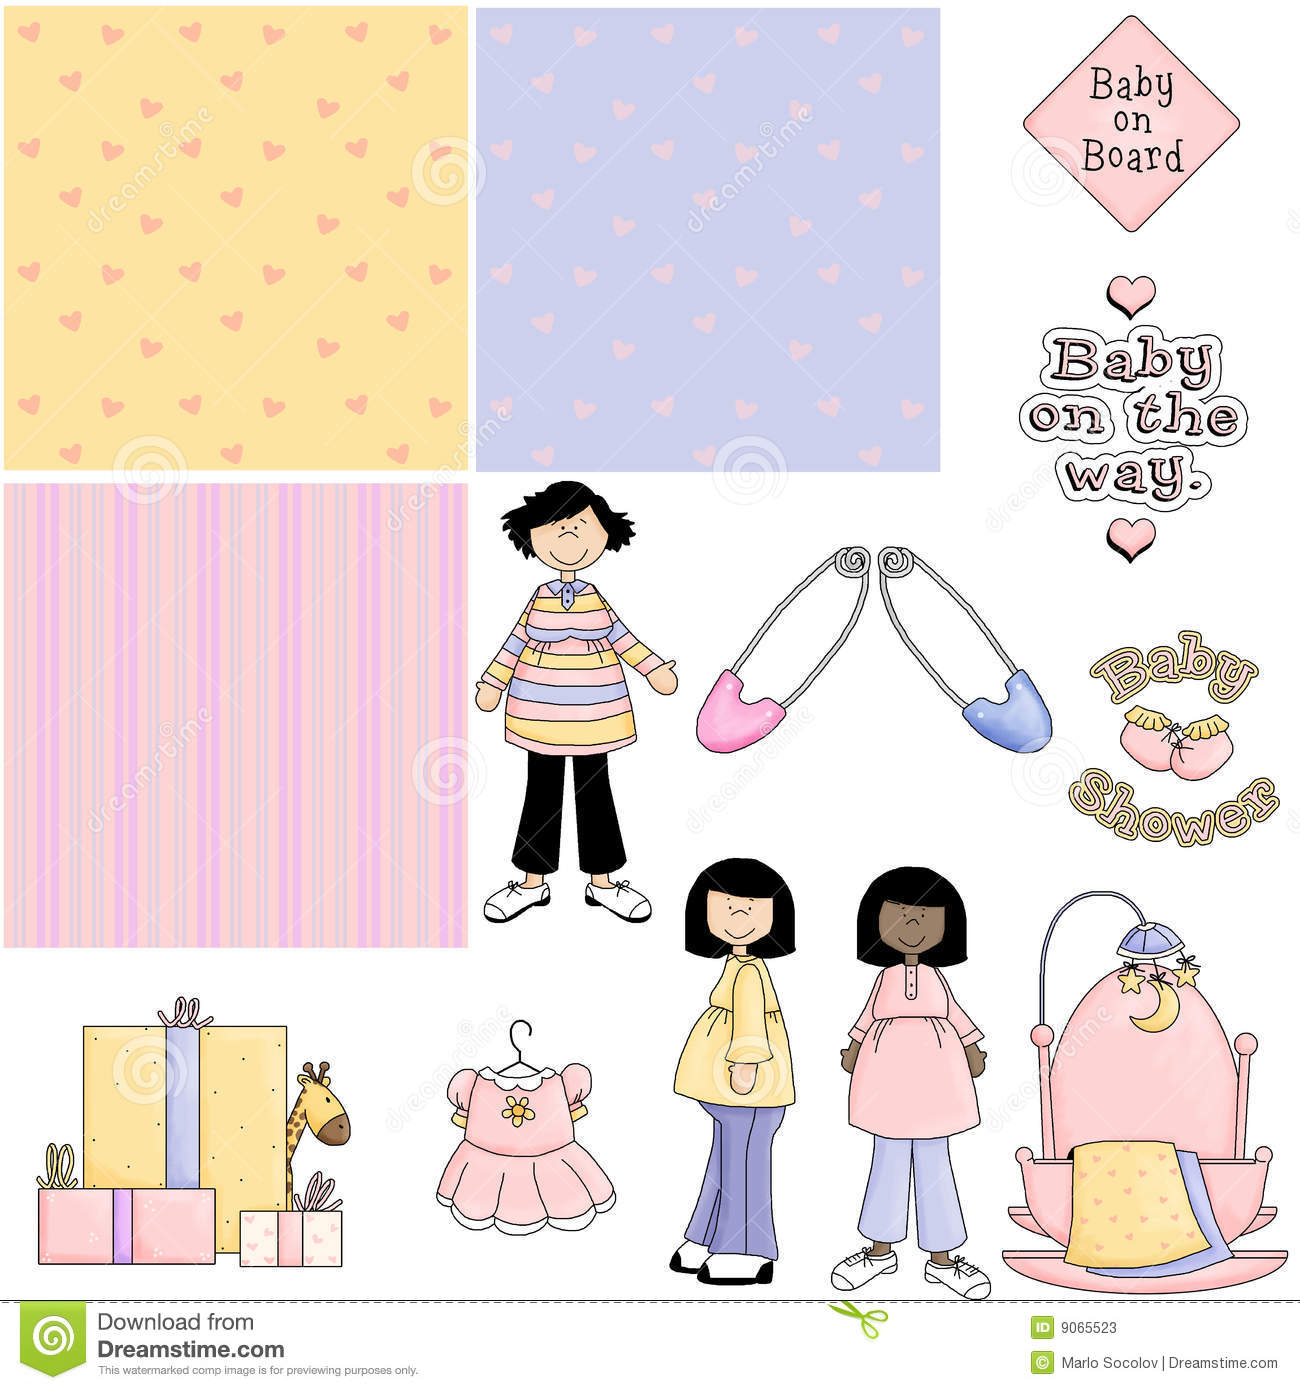 Stock Photos  Baby Shower Pink 2 Clipart  Image  9065523